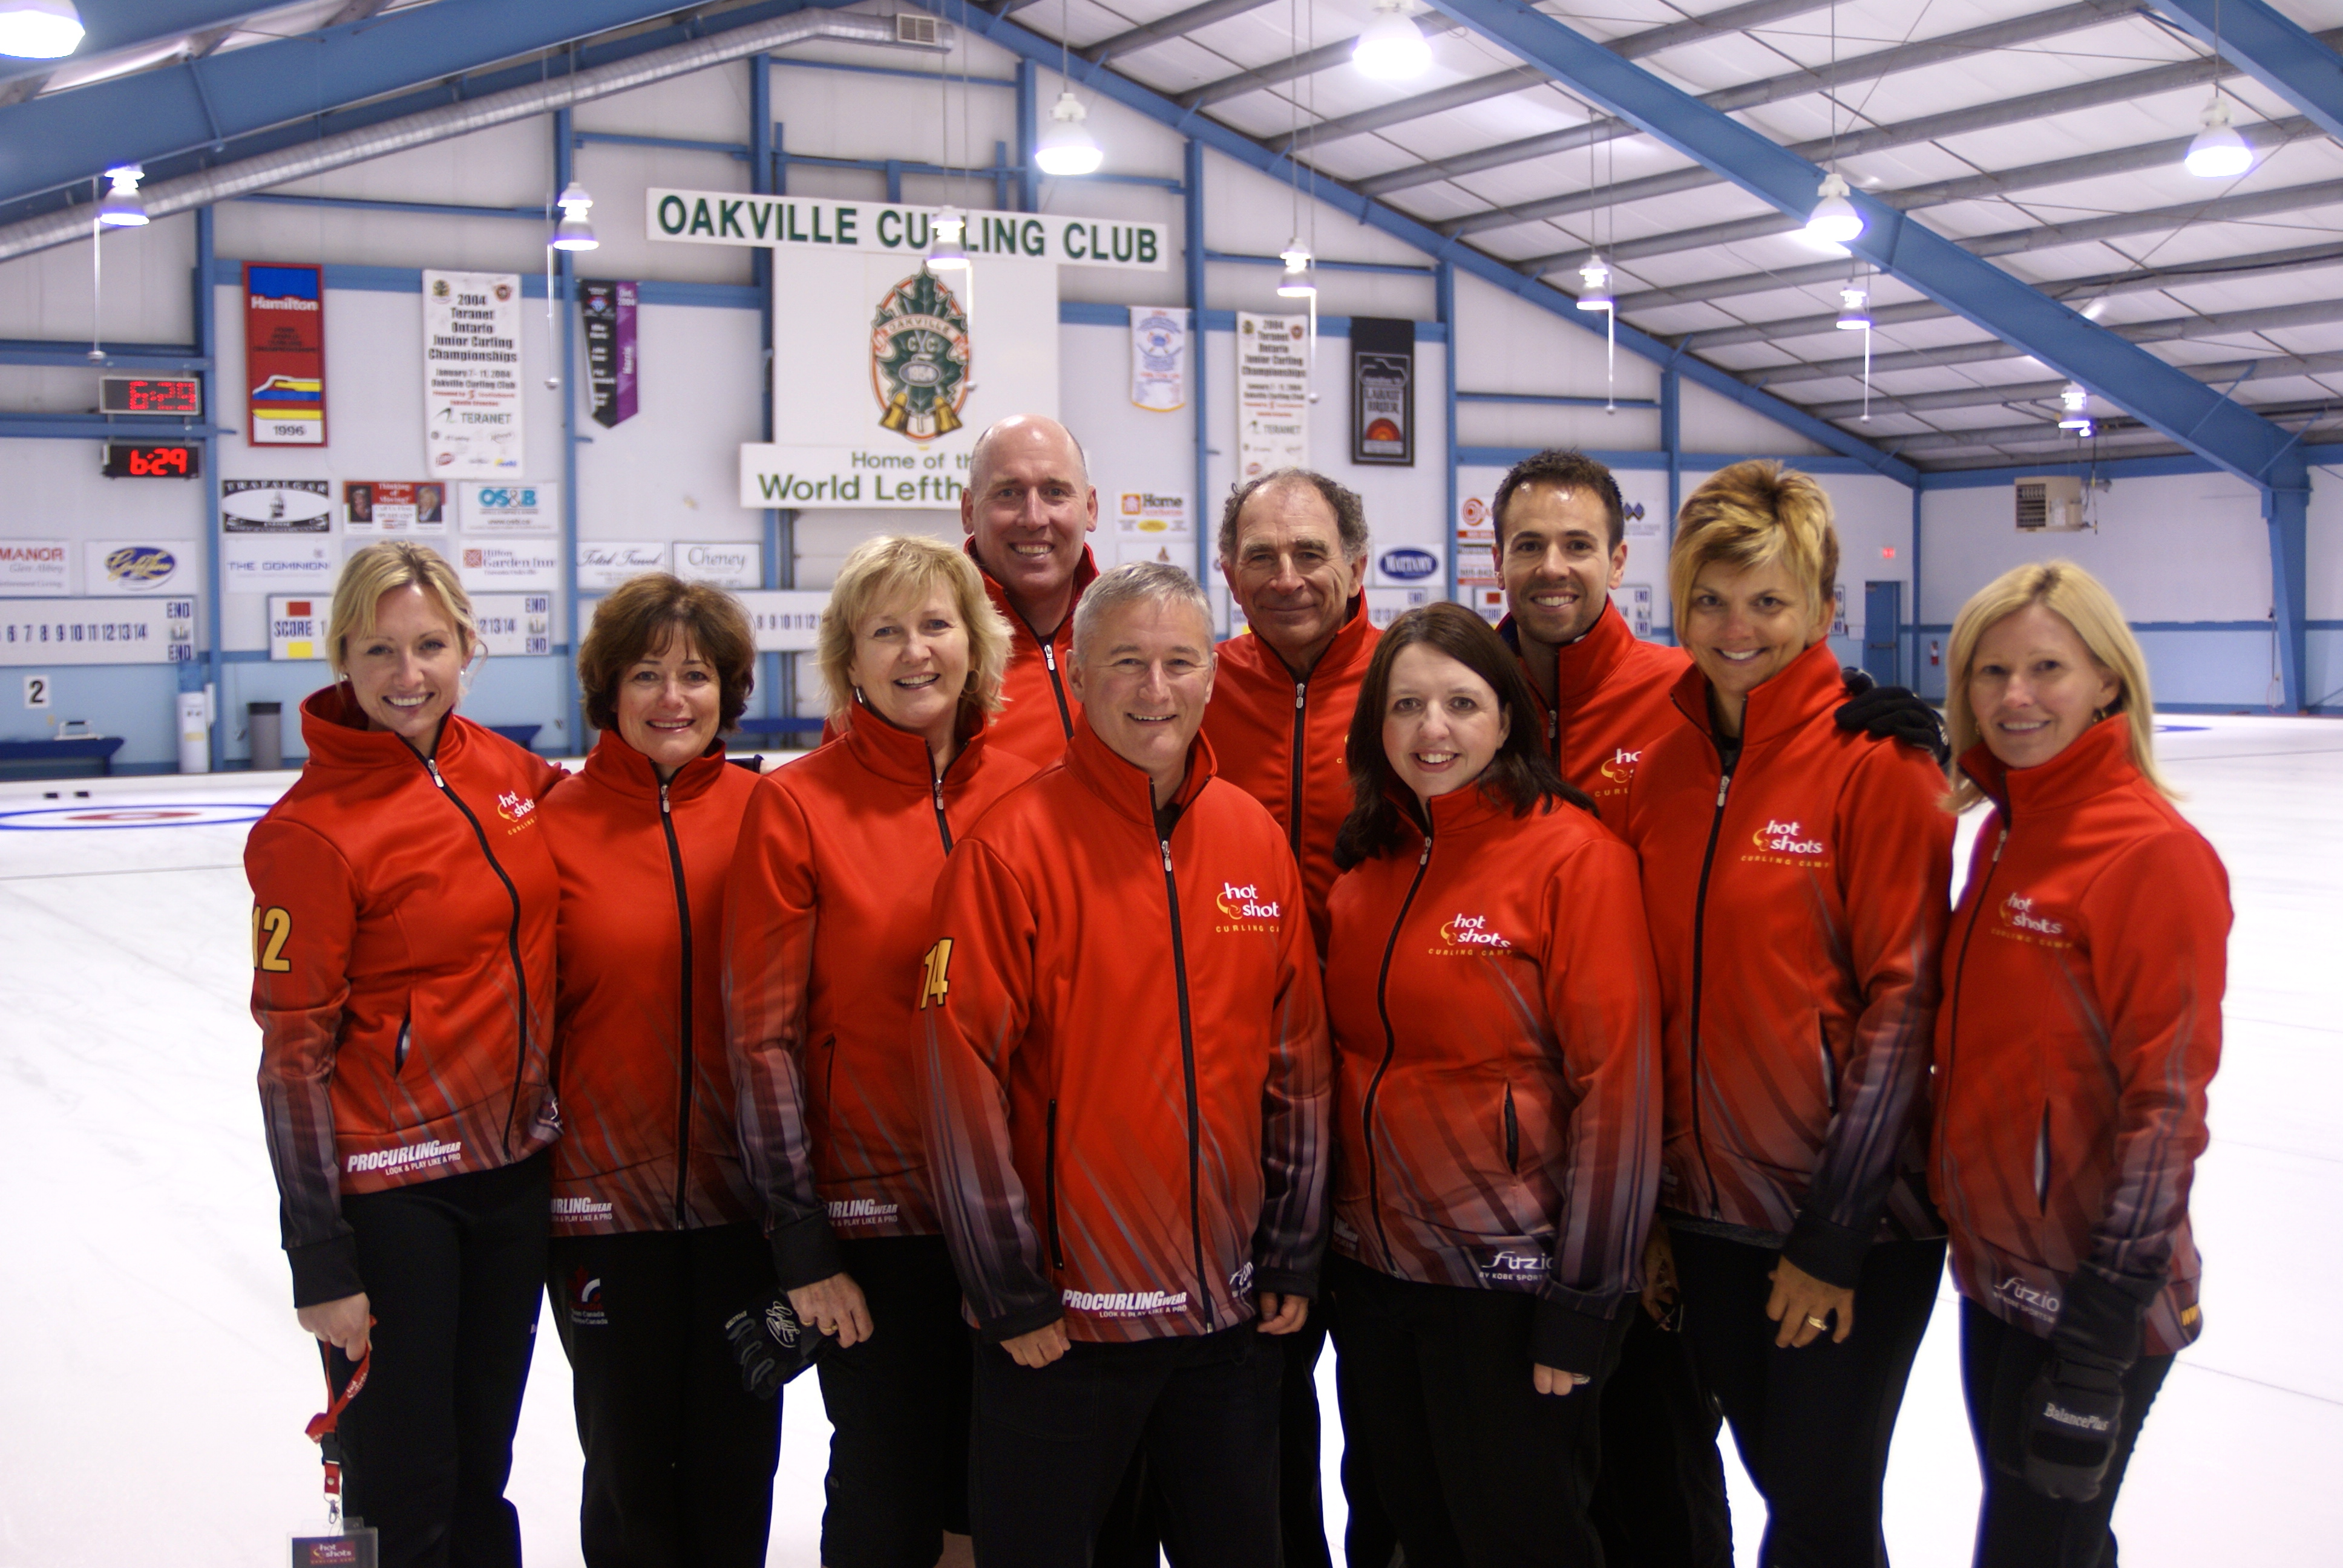 Instructors Group - Hot Shots Curling Camp